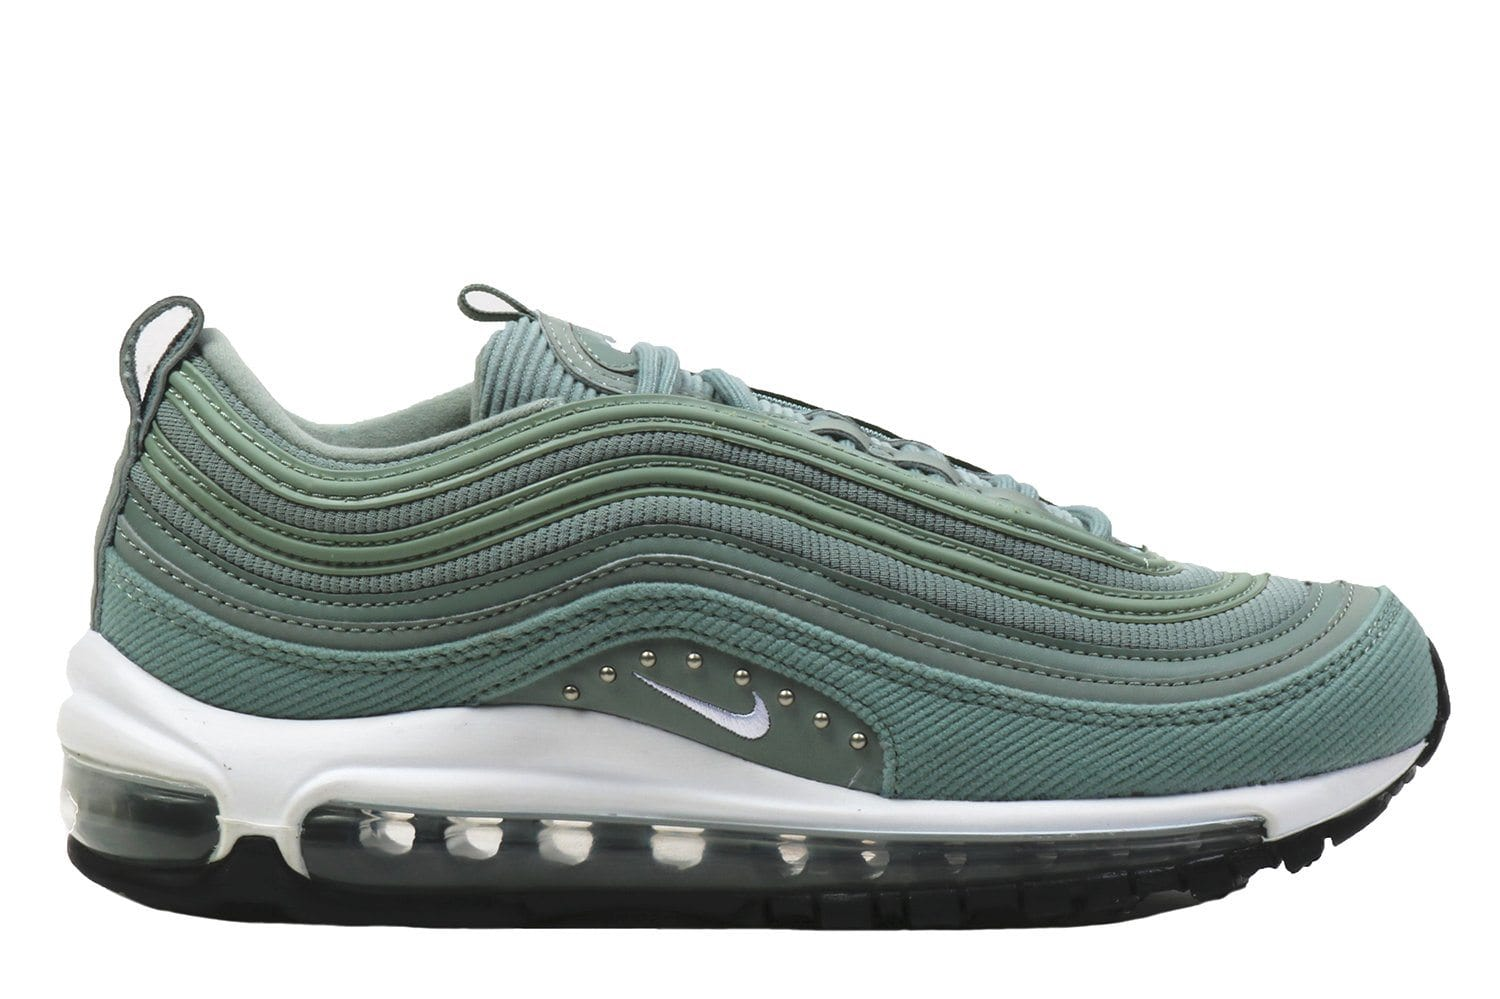 outlet store 9aa72 393b5 W AIR MAX 97 SE-AQ4137-300 WOMENS FOOTWEAR NIKE MICA GREEN WHITE